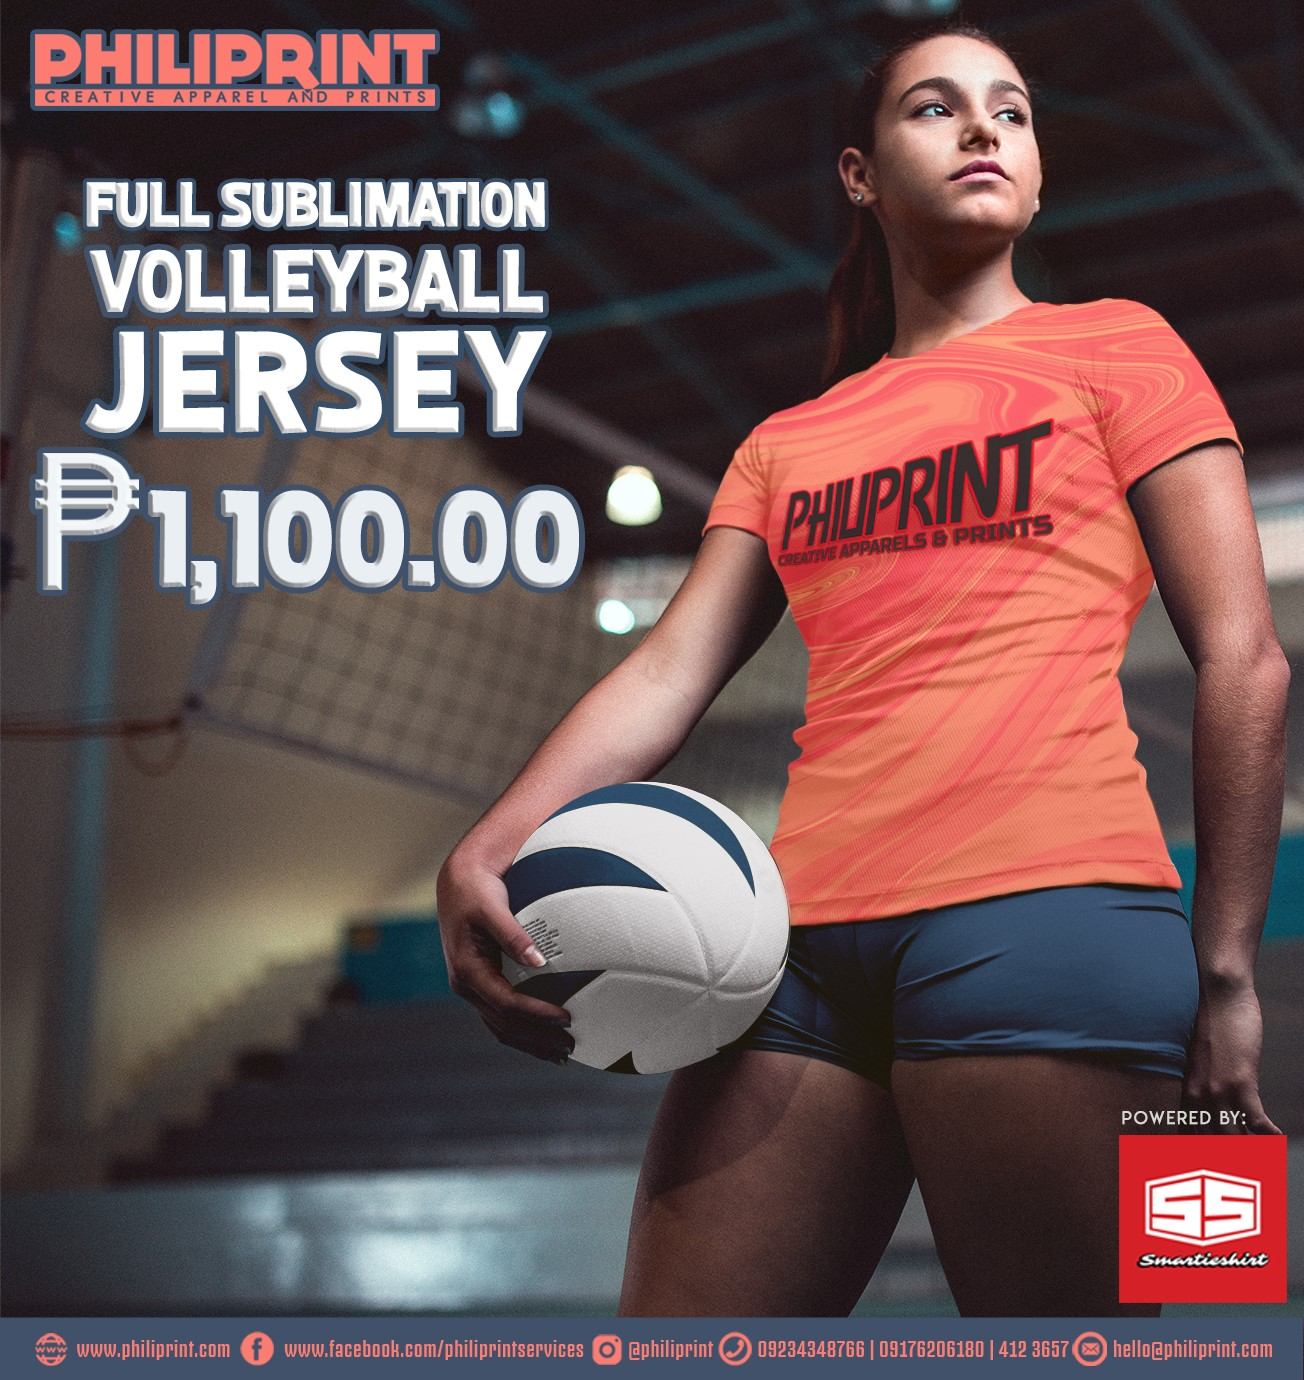 Volleyball Jersey Philiprint